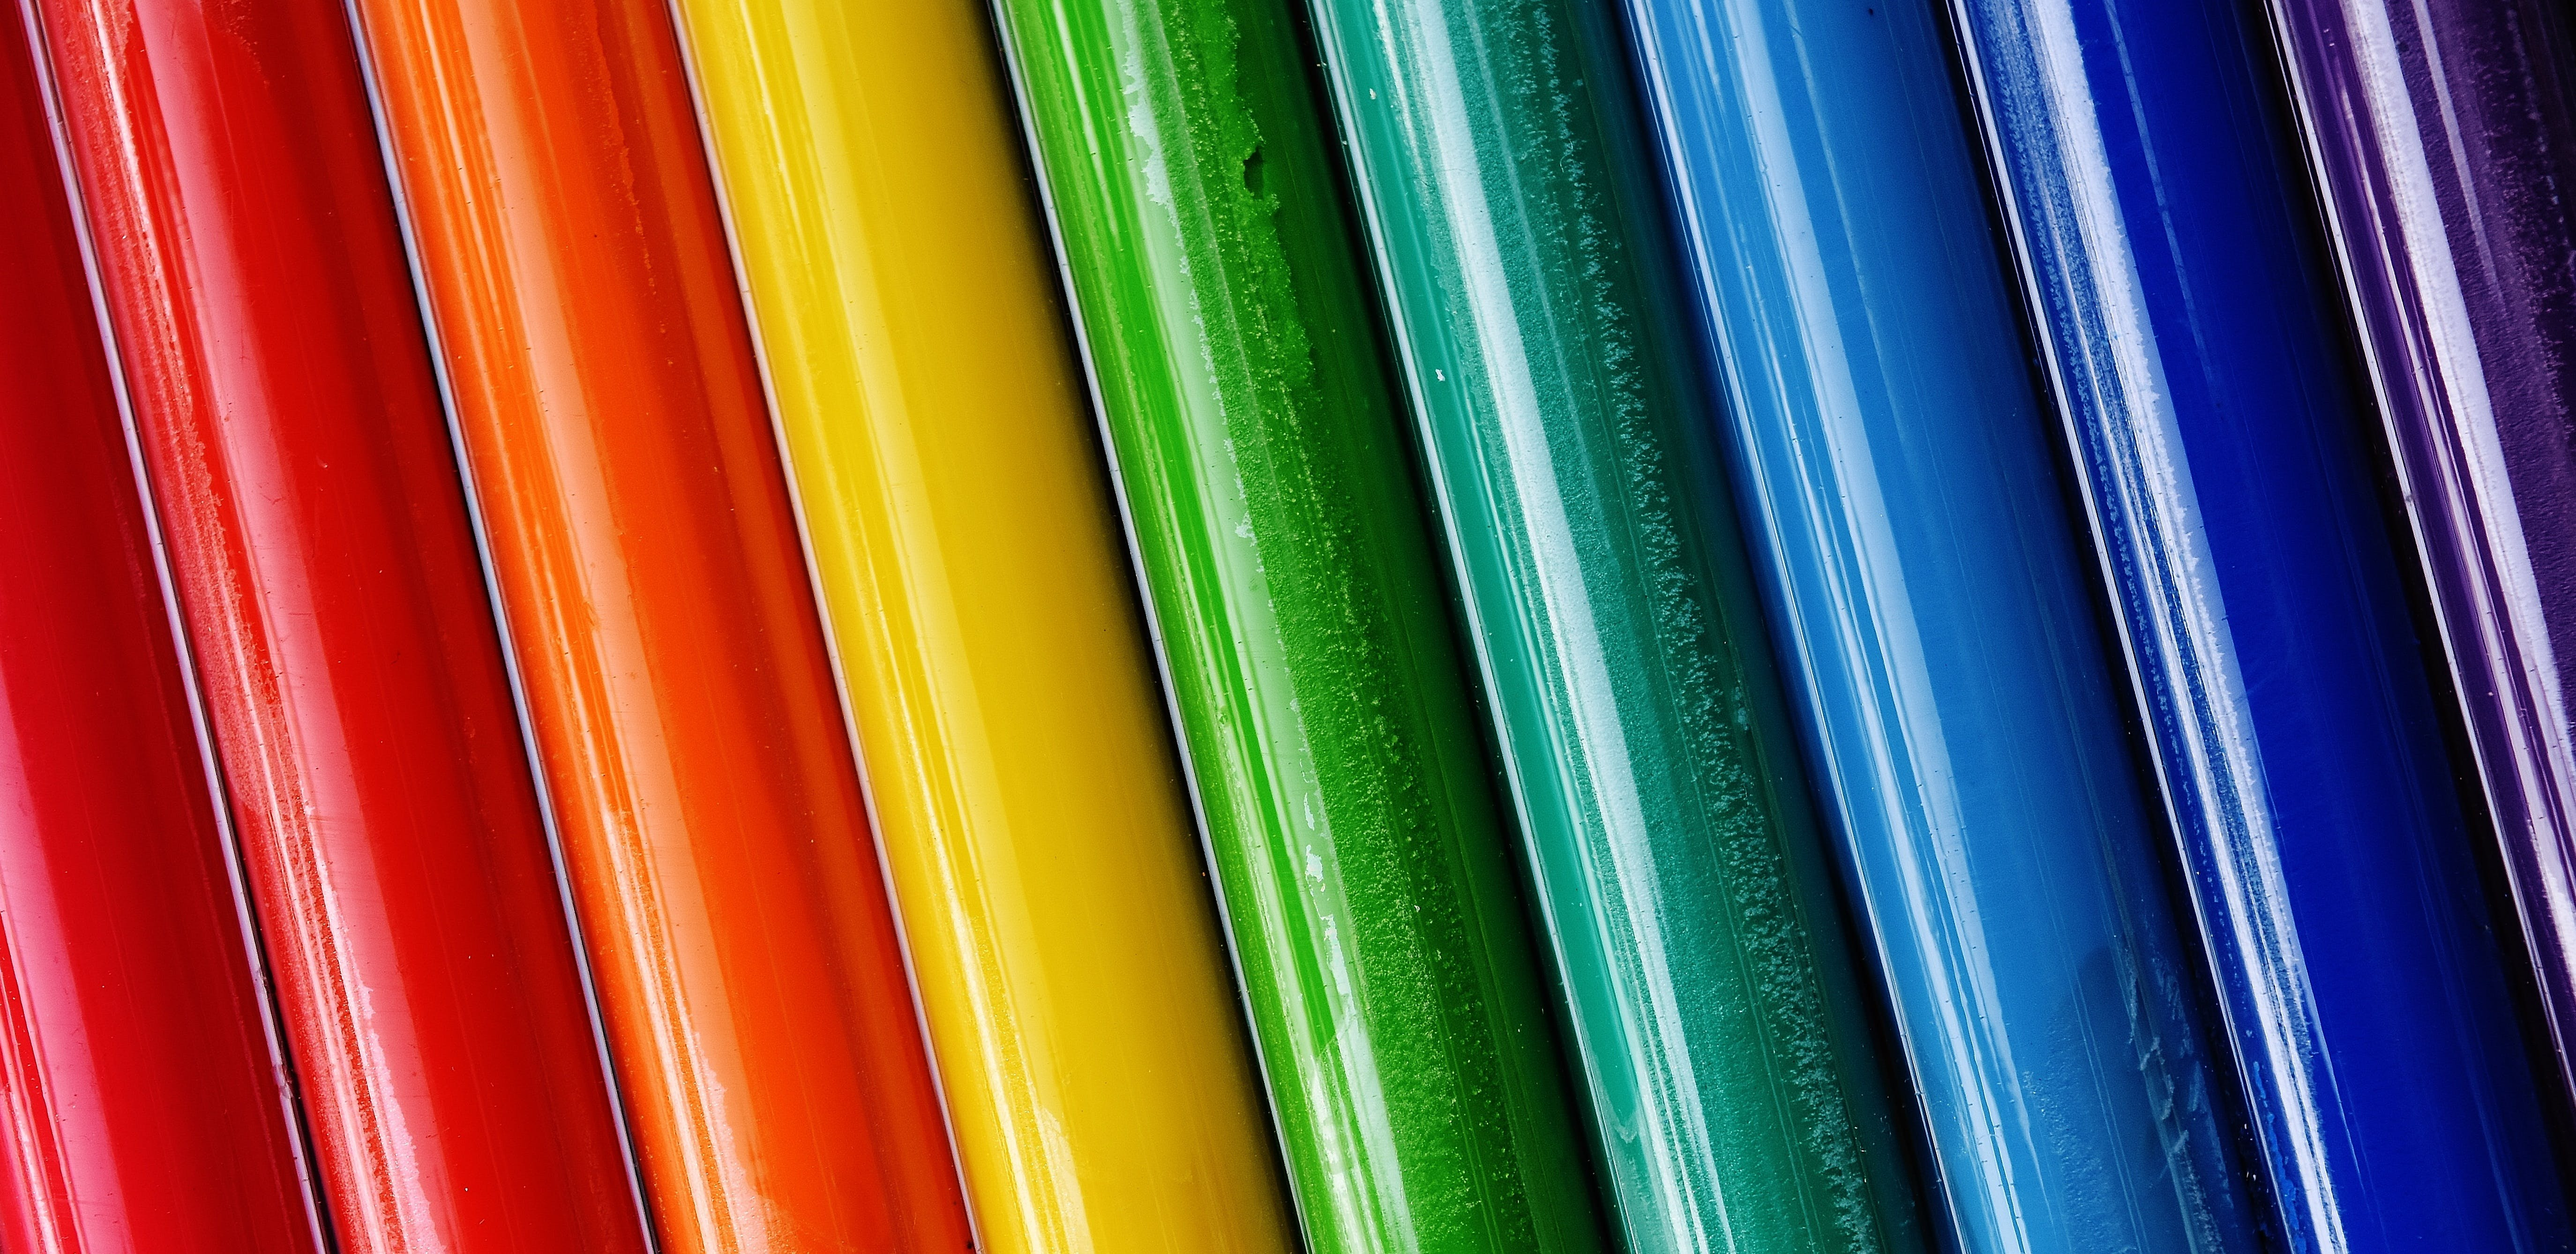 Closeup Photo of Assorted-color Rods